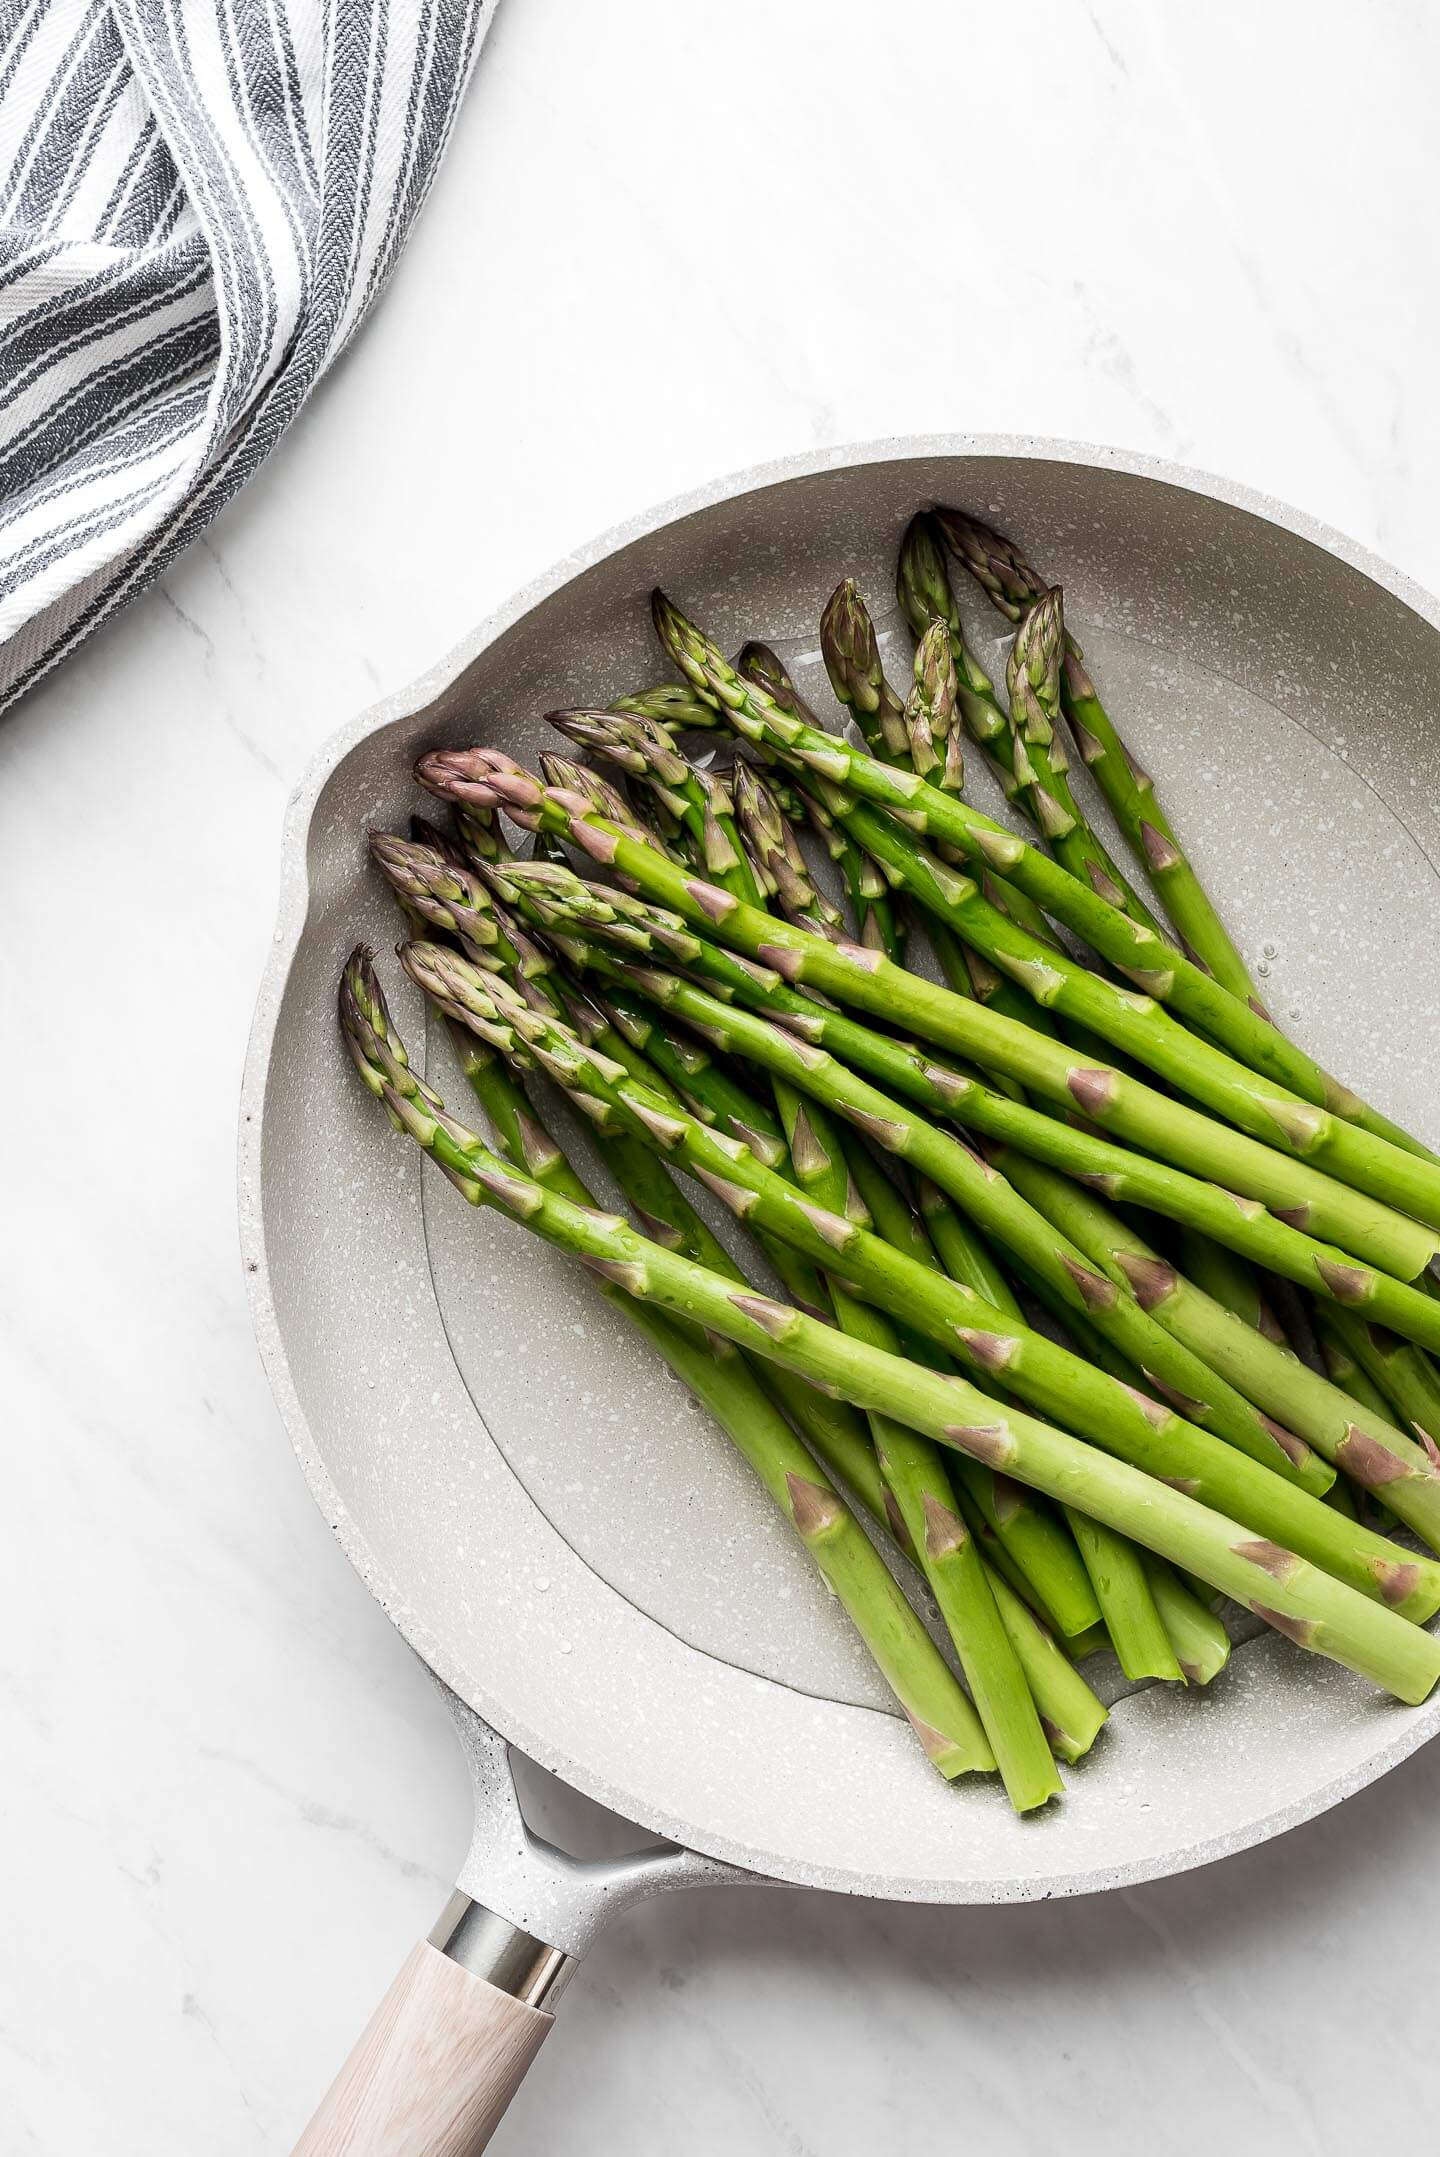 Fresh Asparagus spears in a skillet with water.